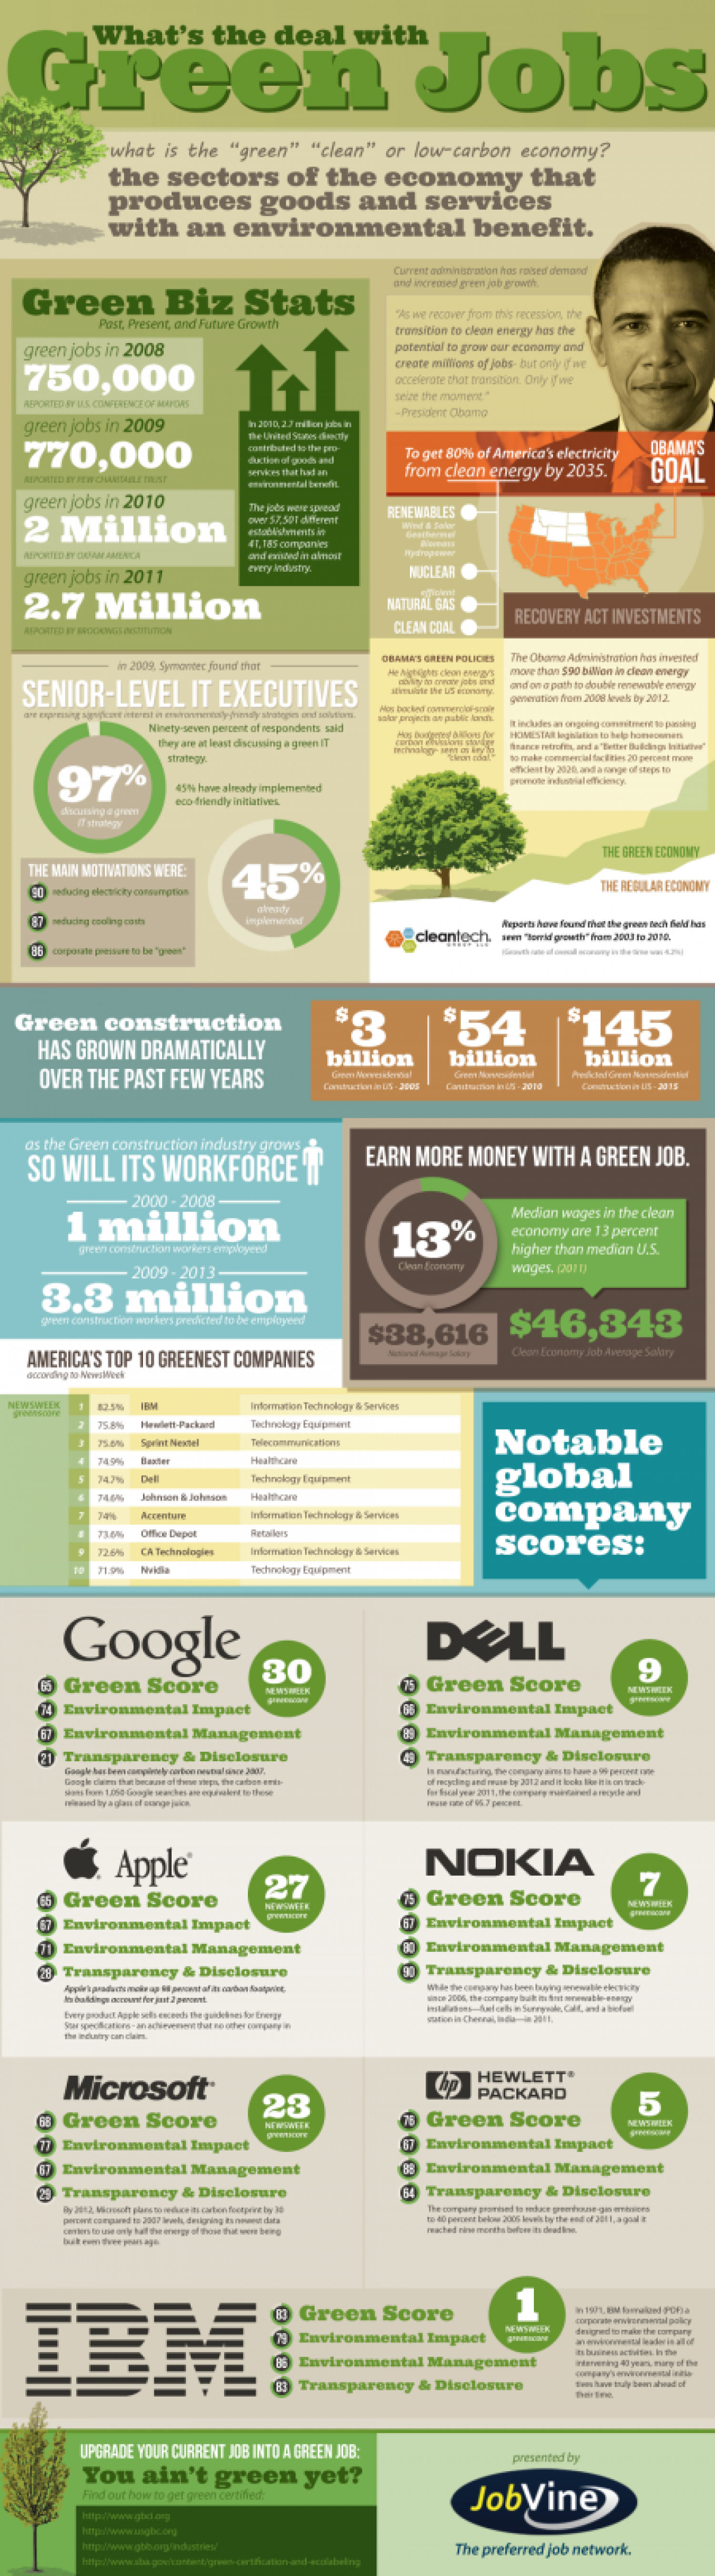 What's the Deal with Green Jobs Infographic